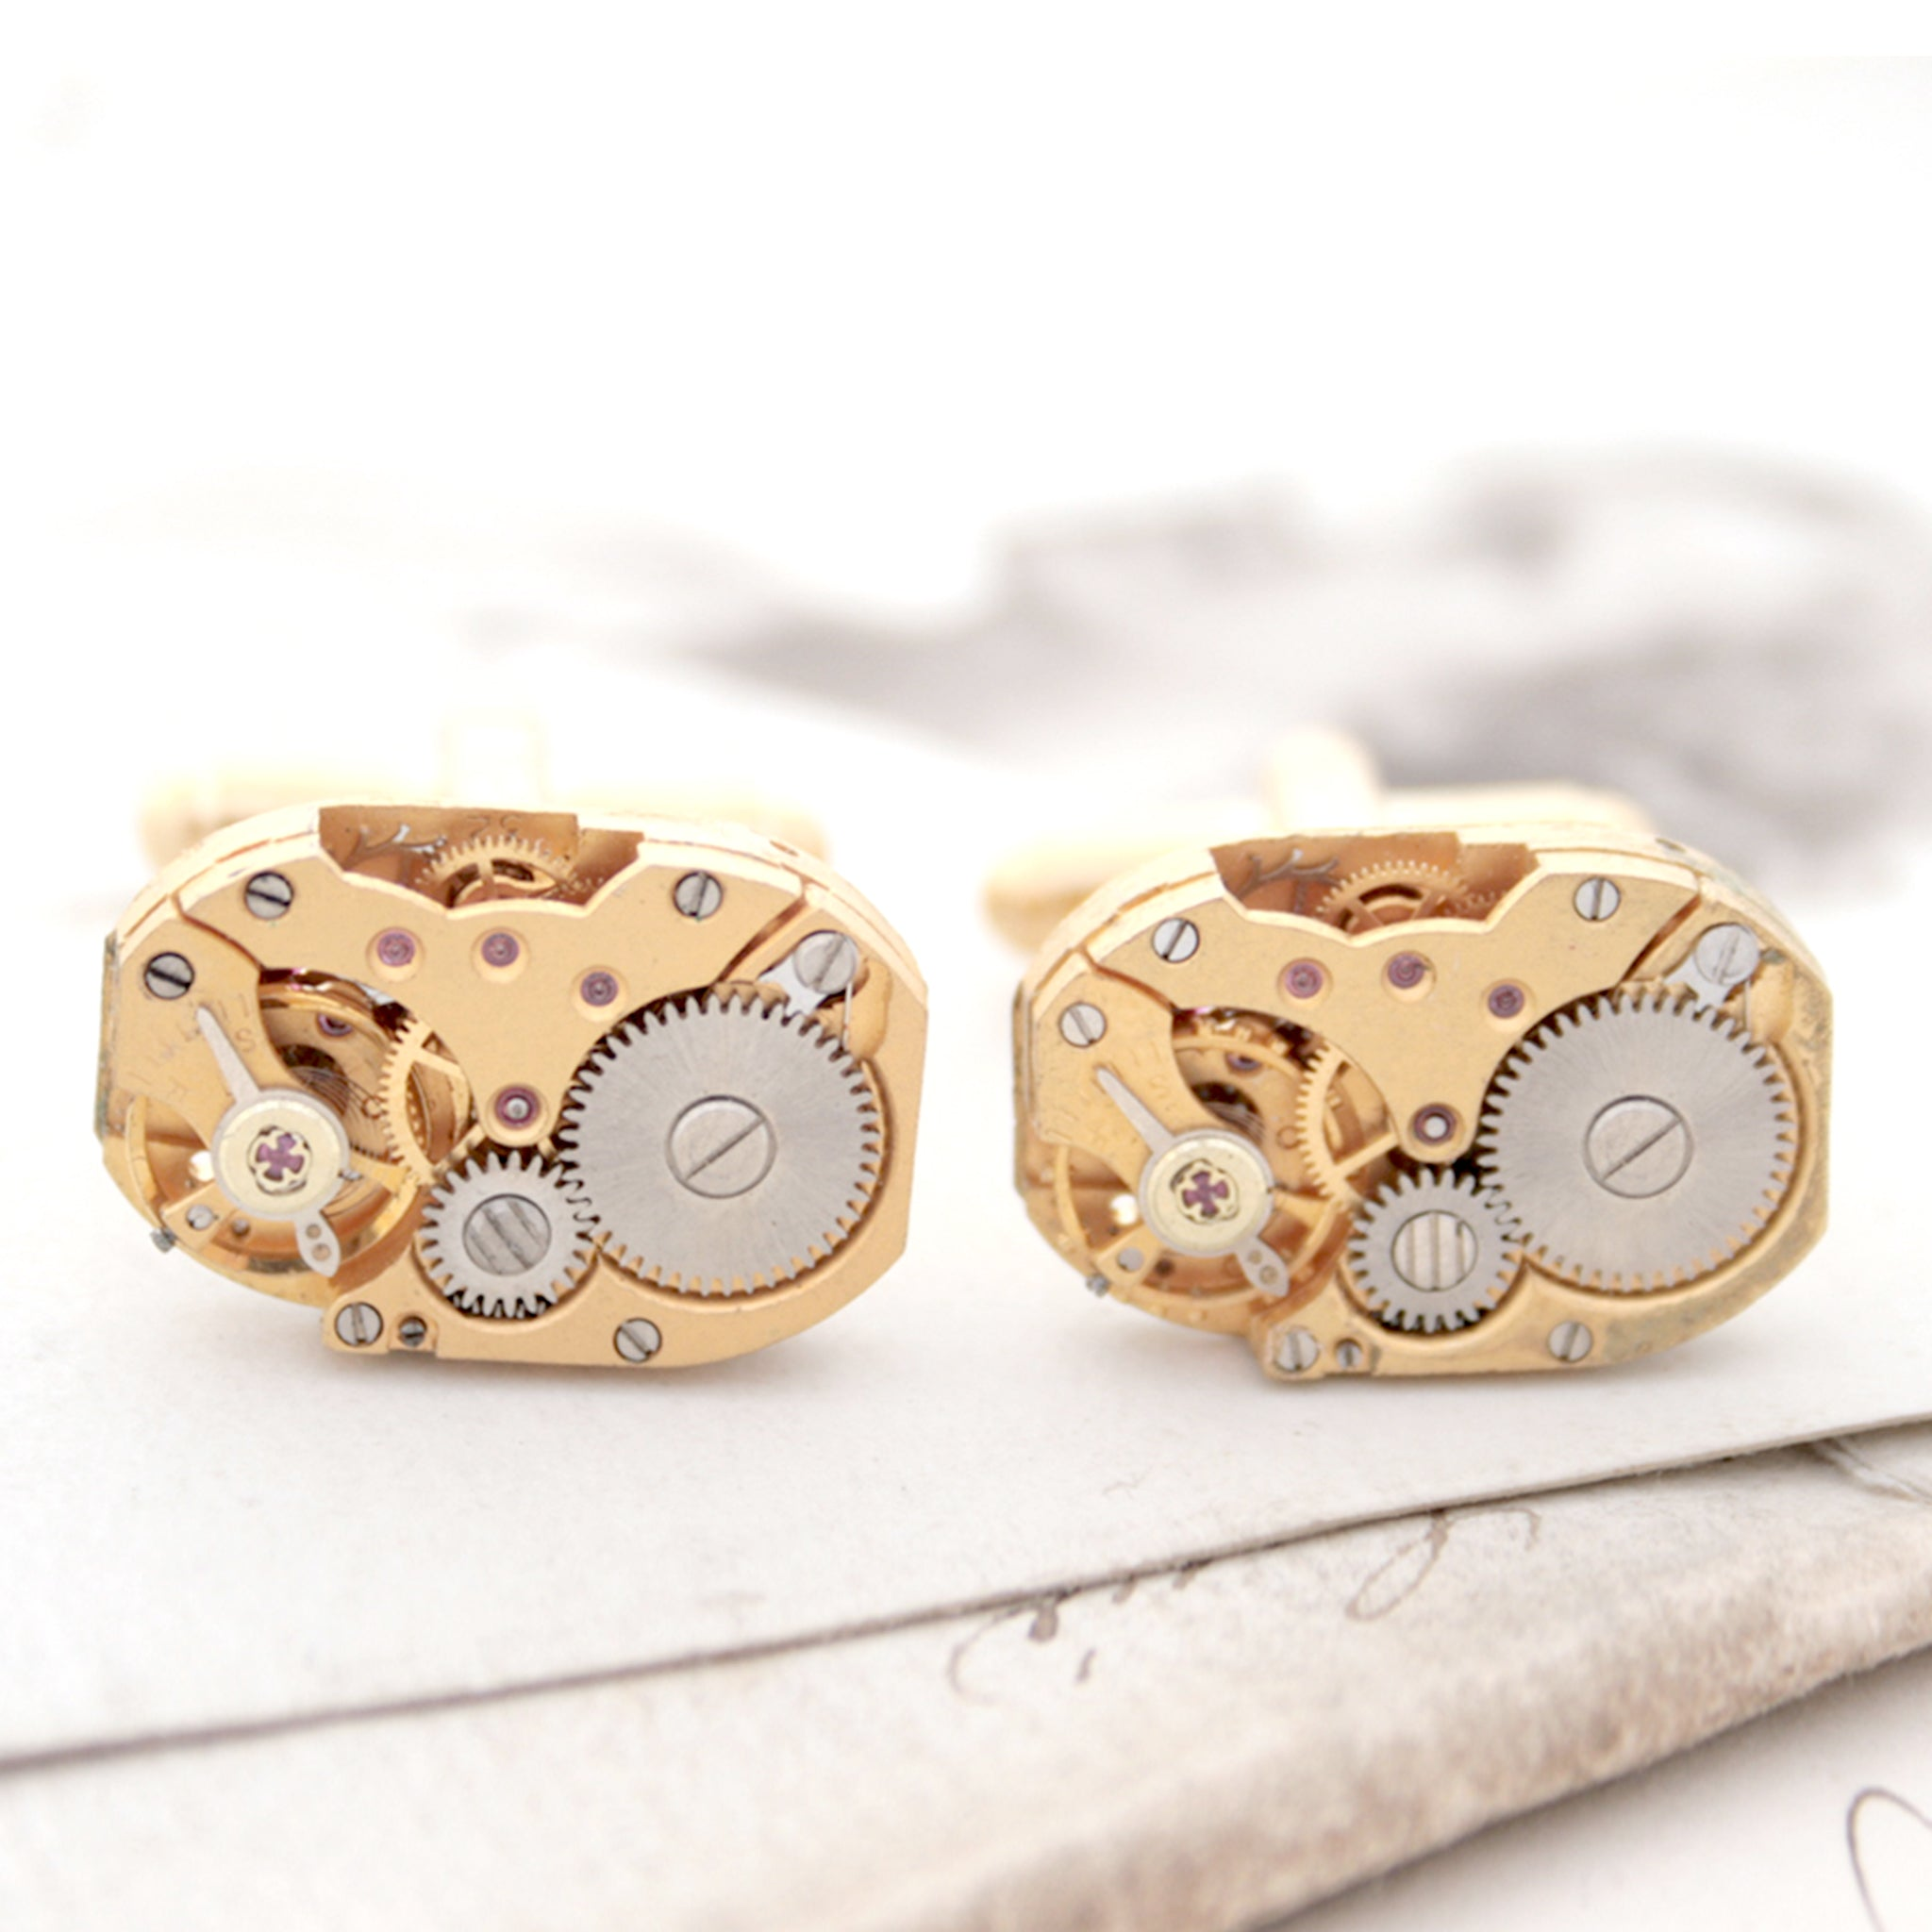 Watch Cufflinks in Gold Tone in Steampunk Style